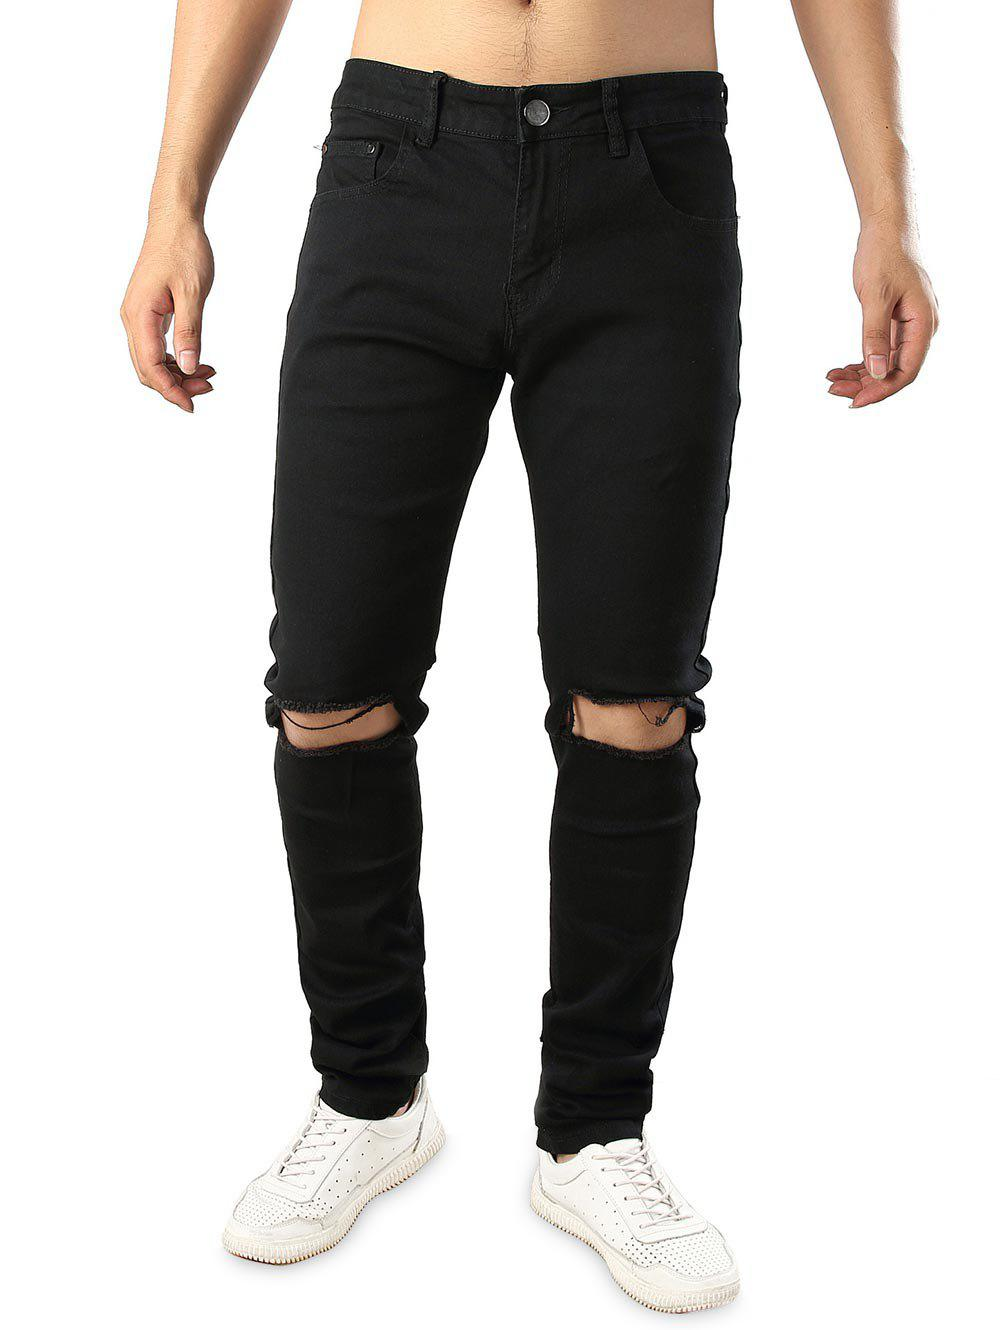 Buy Zipper Fly Whickers Casual Ripped Jeans